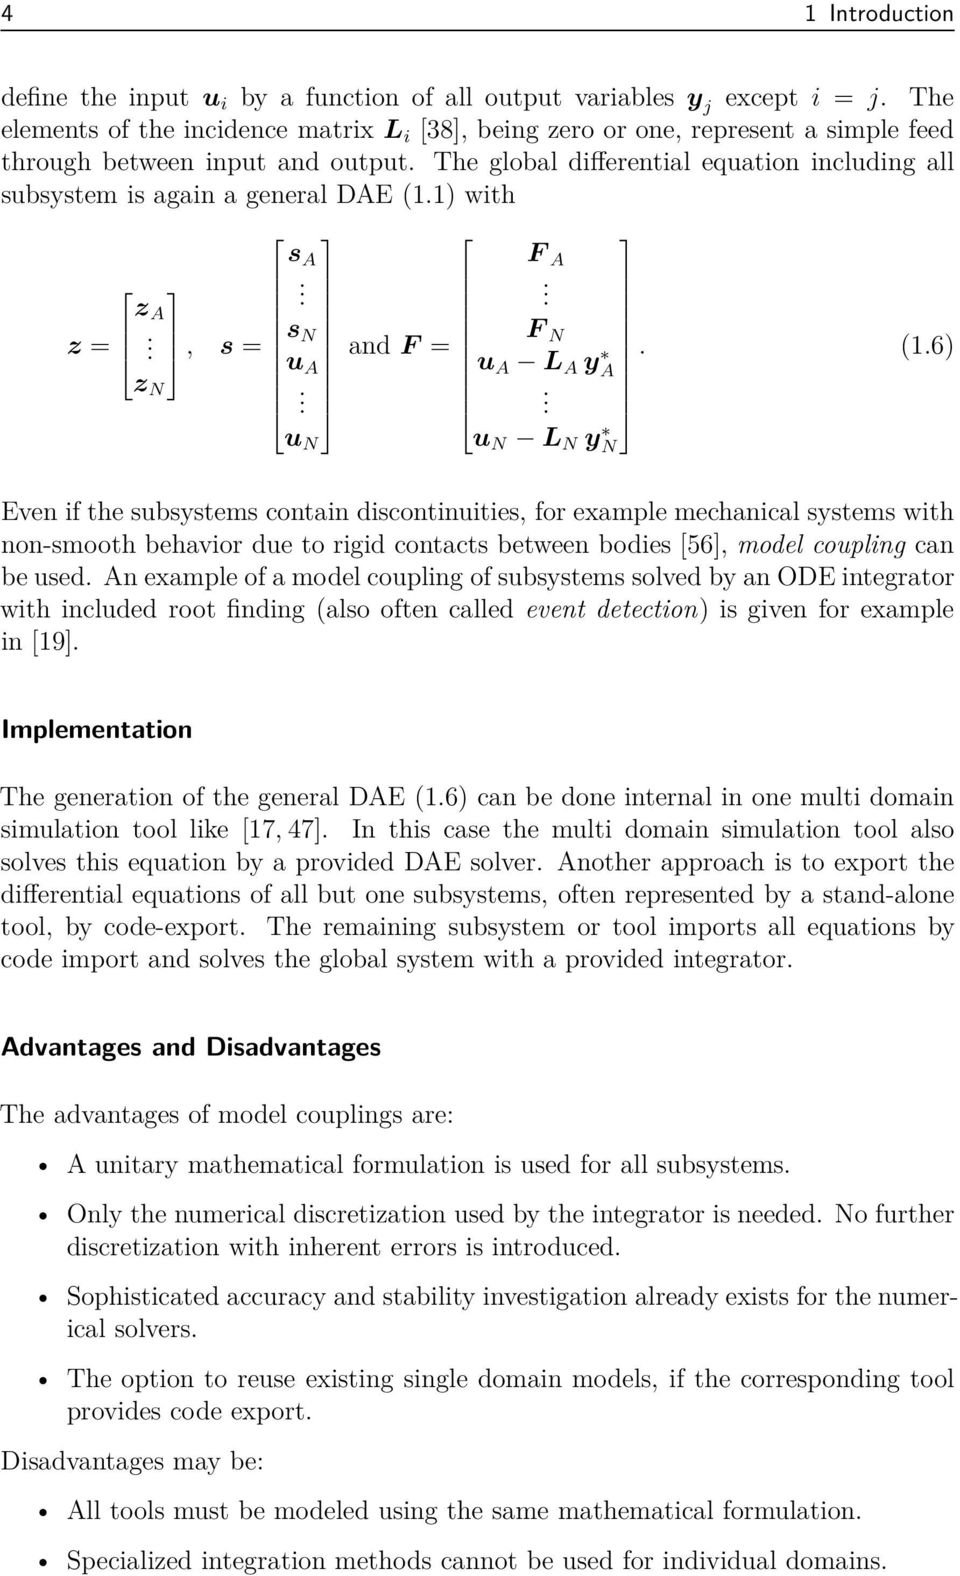 Parallel Co-Simulation for Mechatronic Systems - PDF